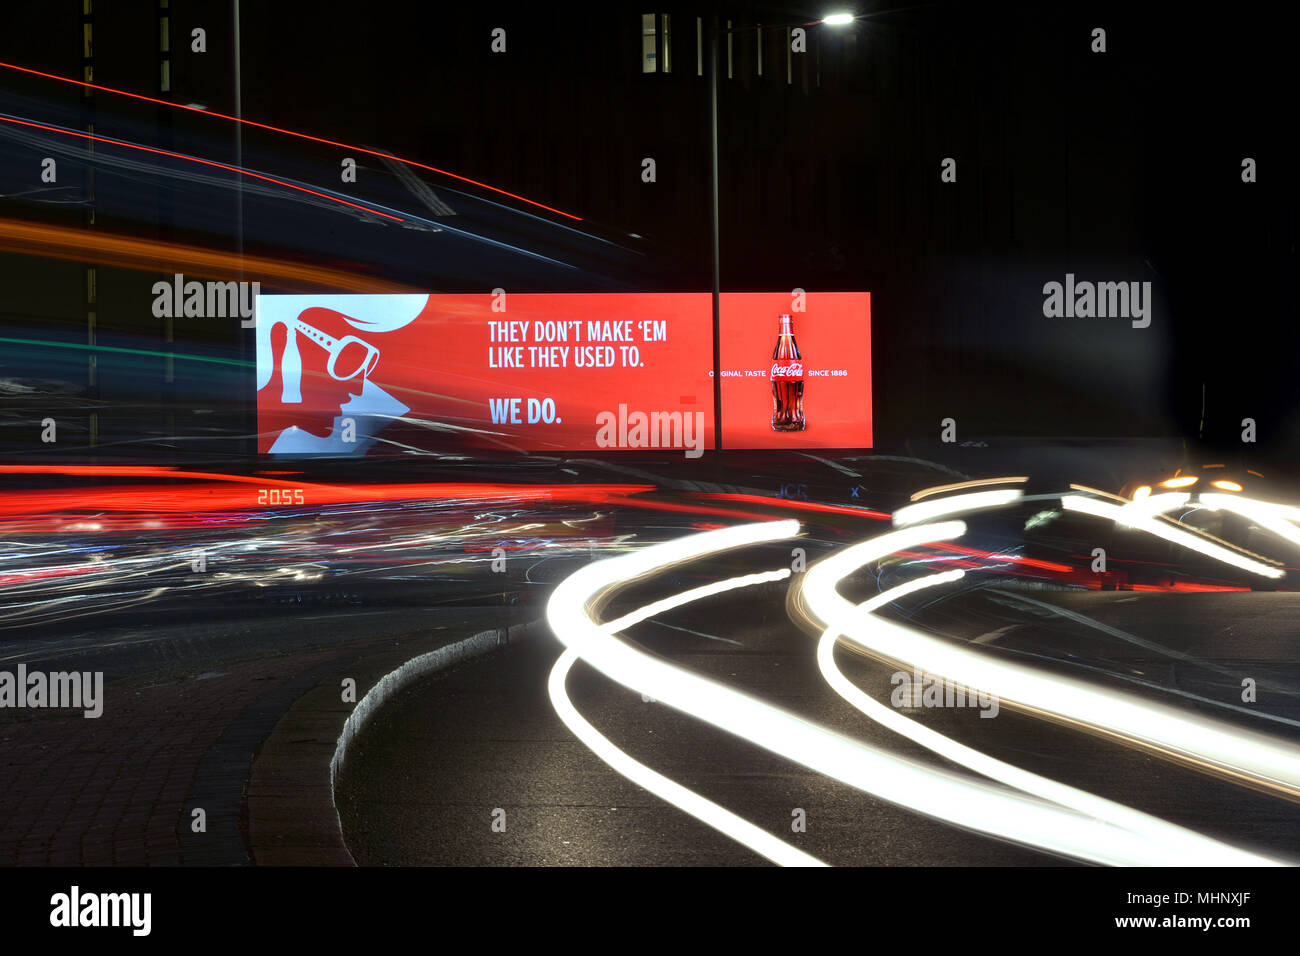 Digital advertising hoardings promoting coca cola on the Talgarth Road, Fulham  in West London, UK. Coca cola have not changed their drink recipe dspi - Stock Image